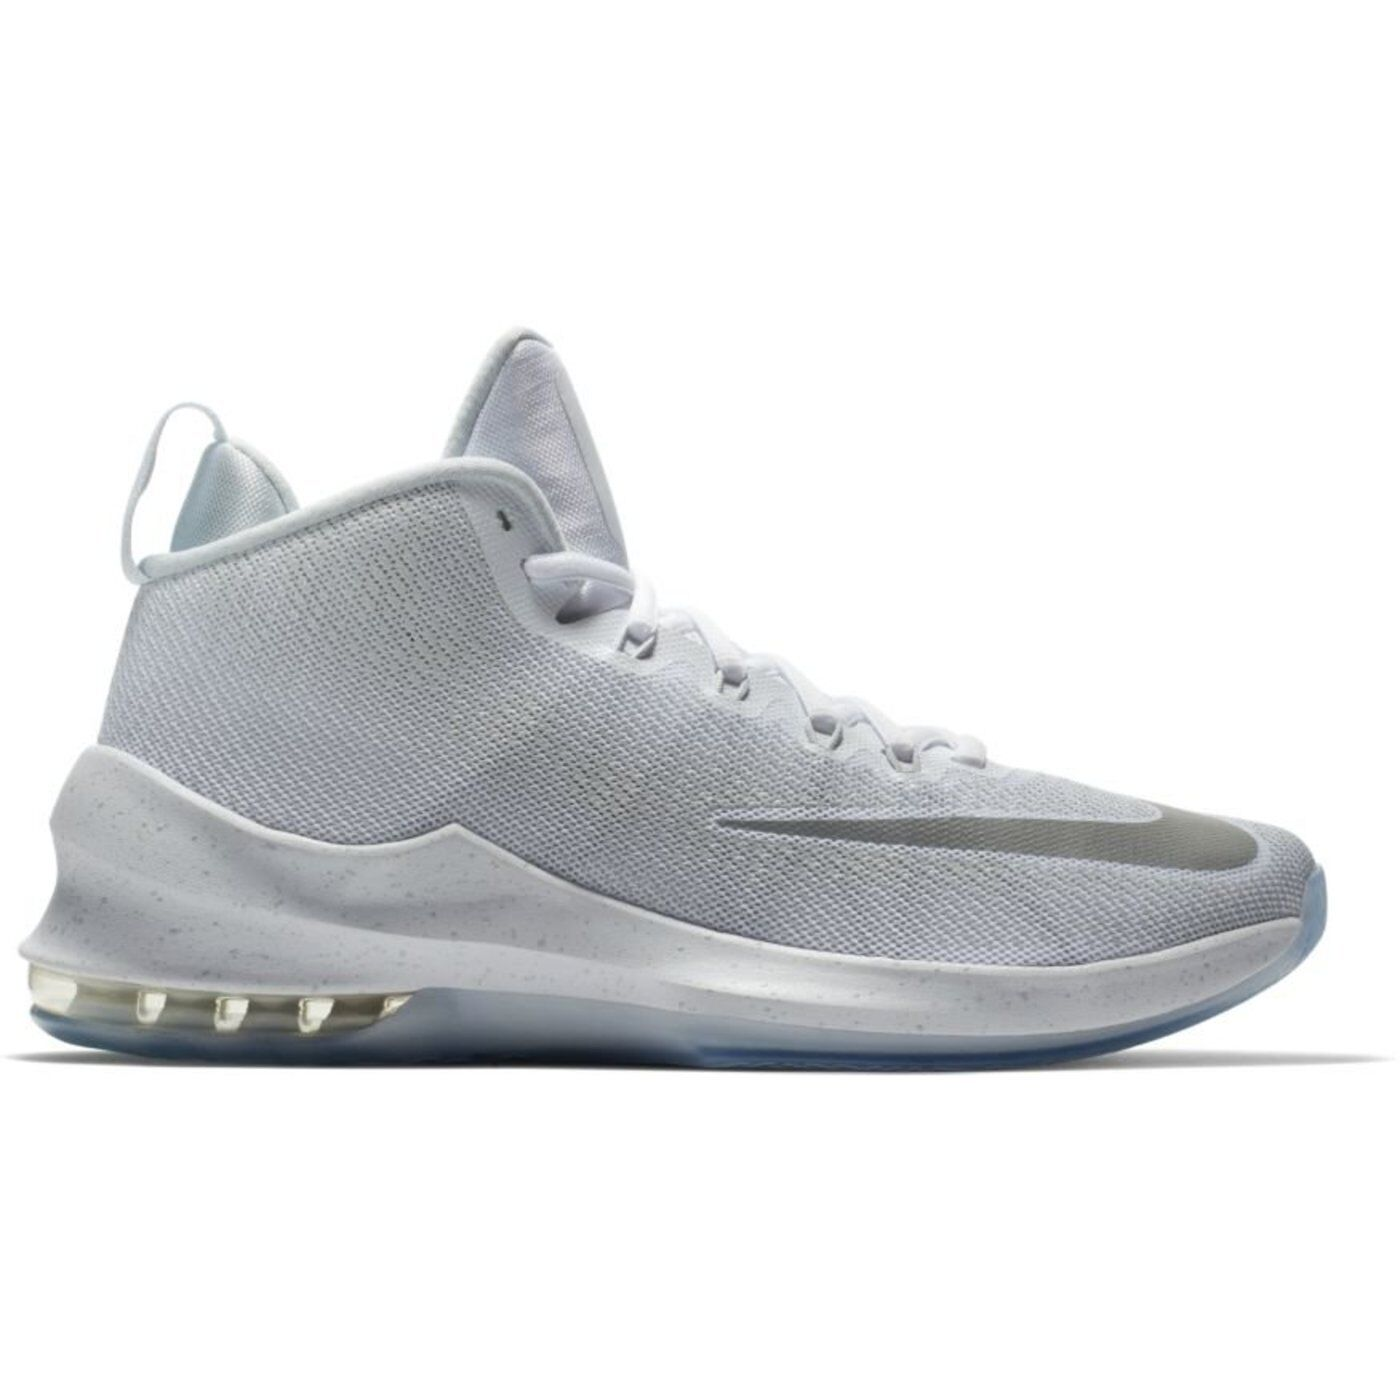 Nike Air Max Infuriate Mid PRM White Silver Men's Basketball shoes Size 11.5